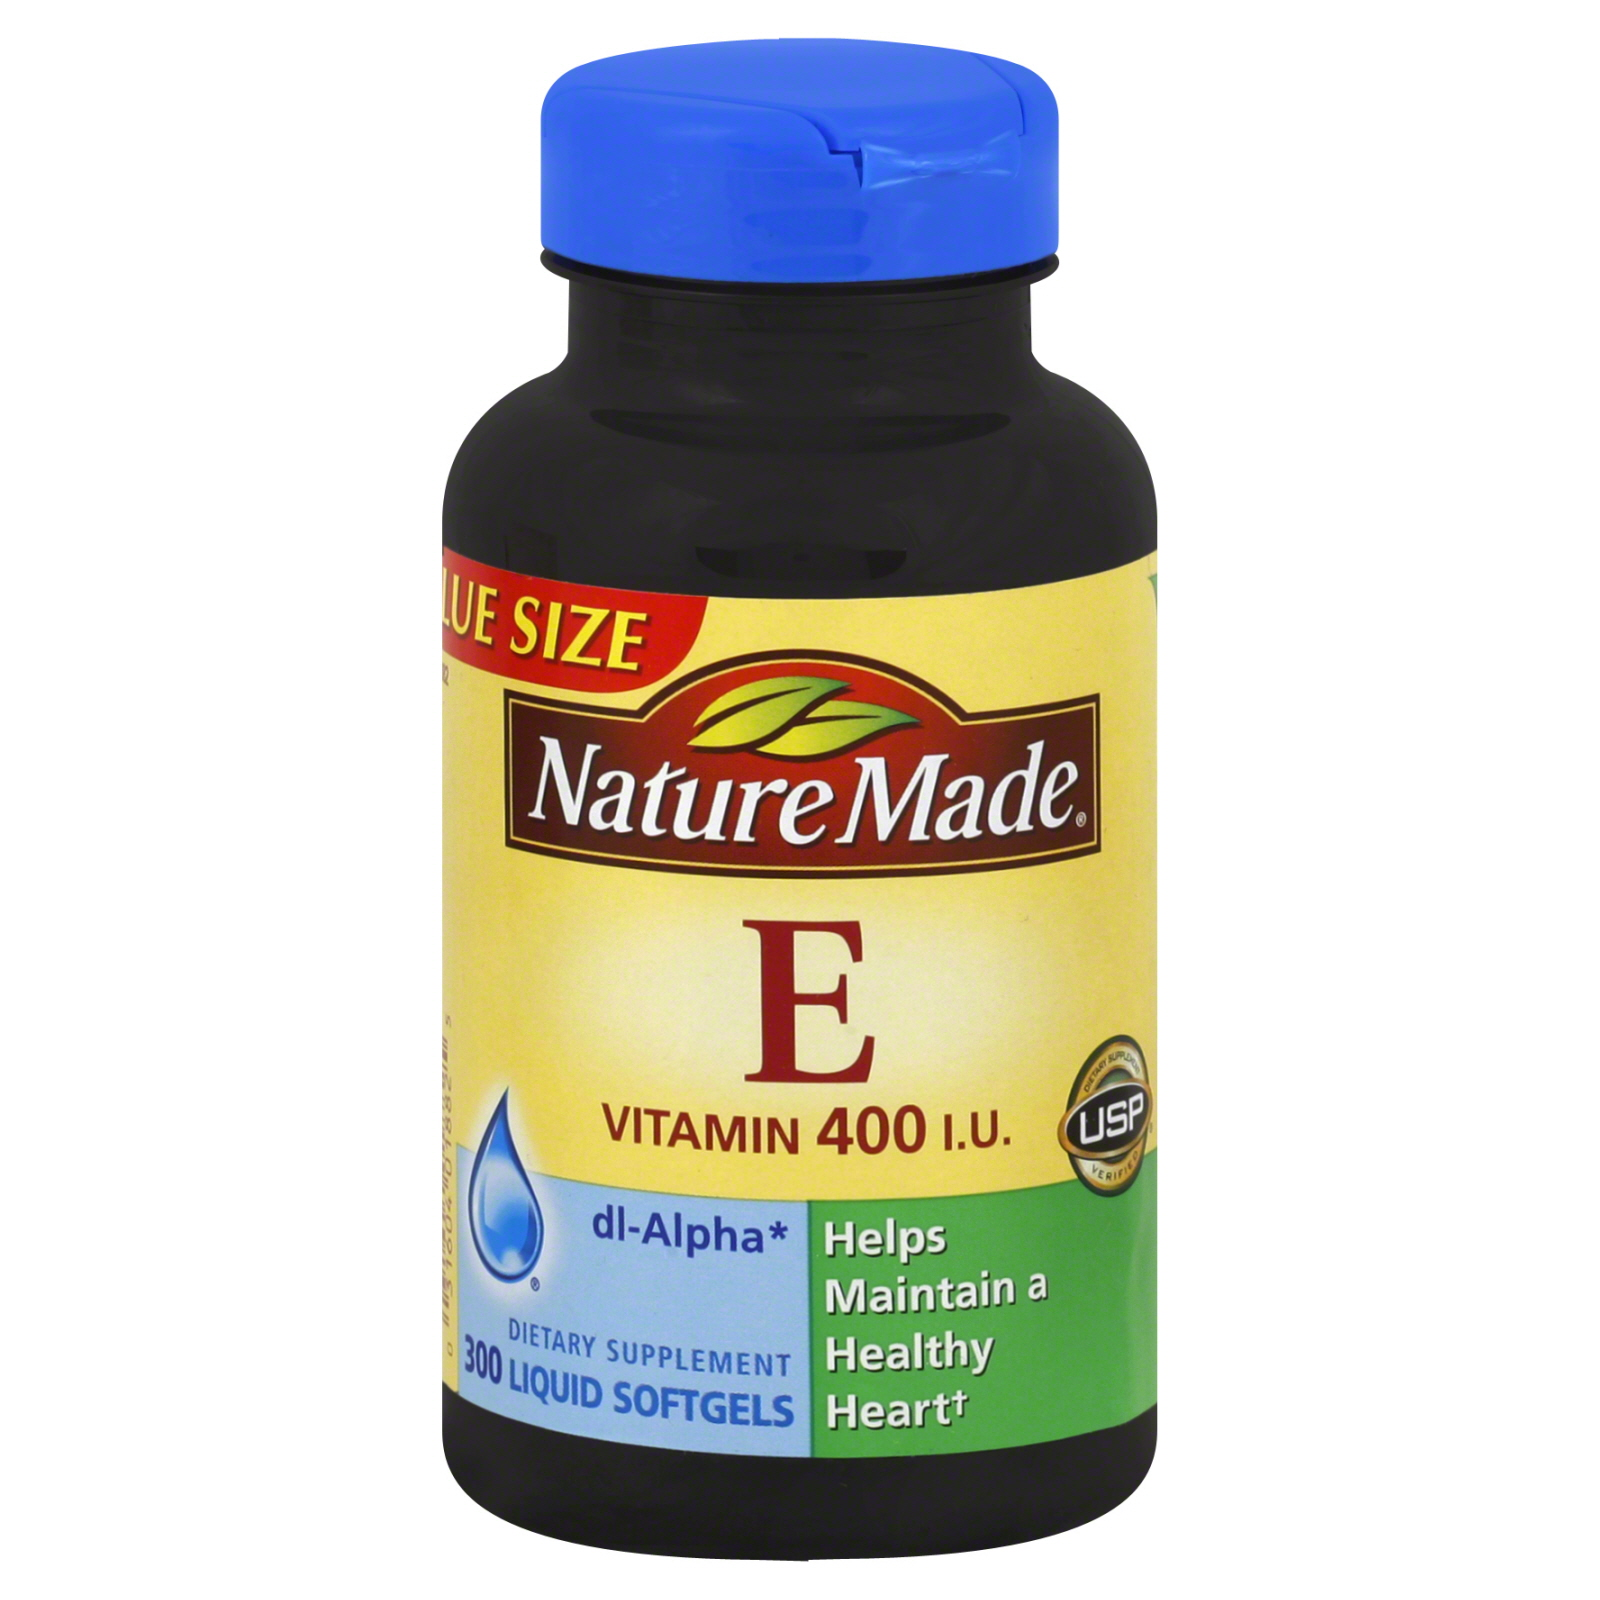 Vitamin E, 400 IU, Liquid Softgels, Value Size, 300 softgels                                                                     at mygofer.com